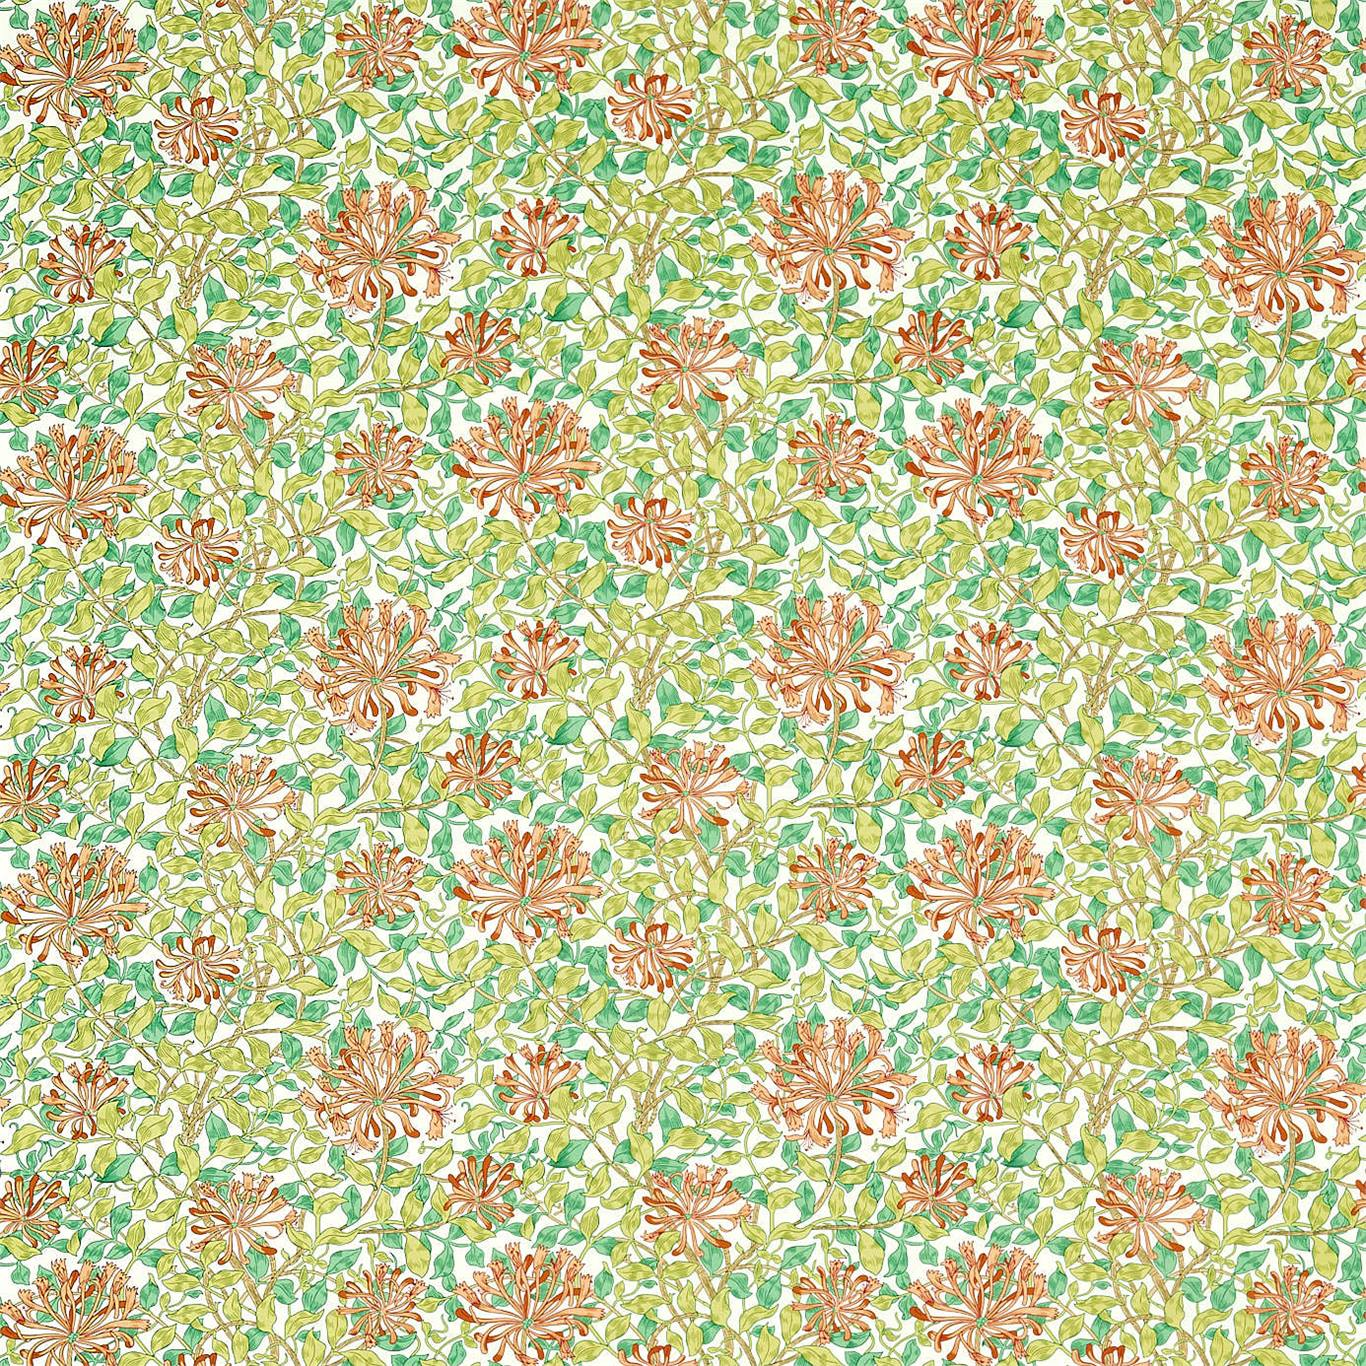 DBPF226850 Collection - Queens Square Fabric